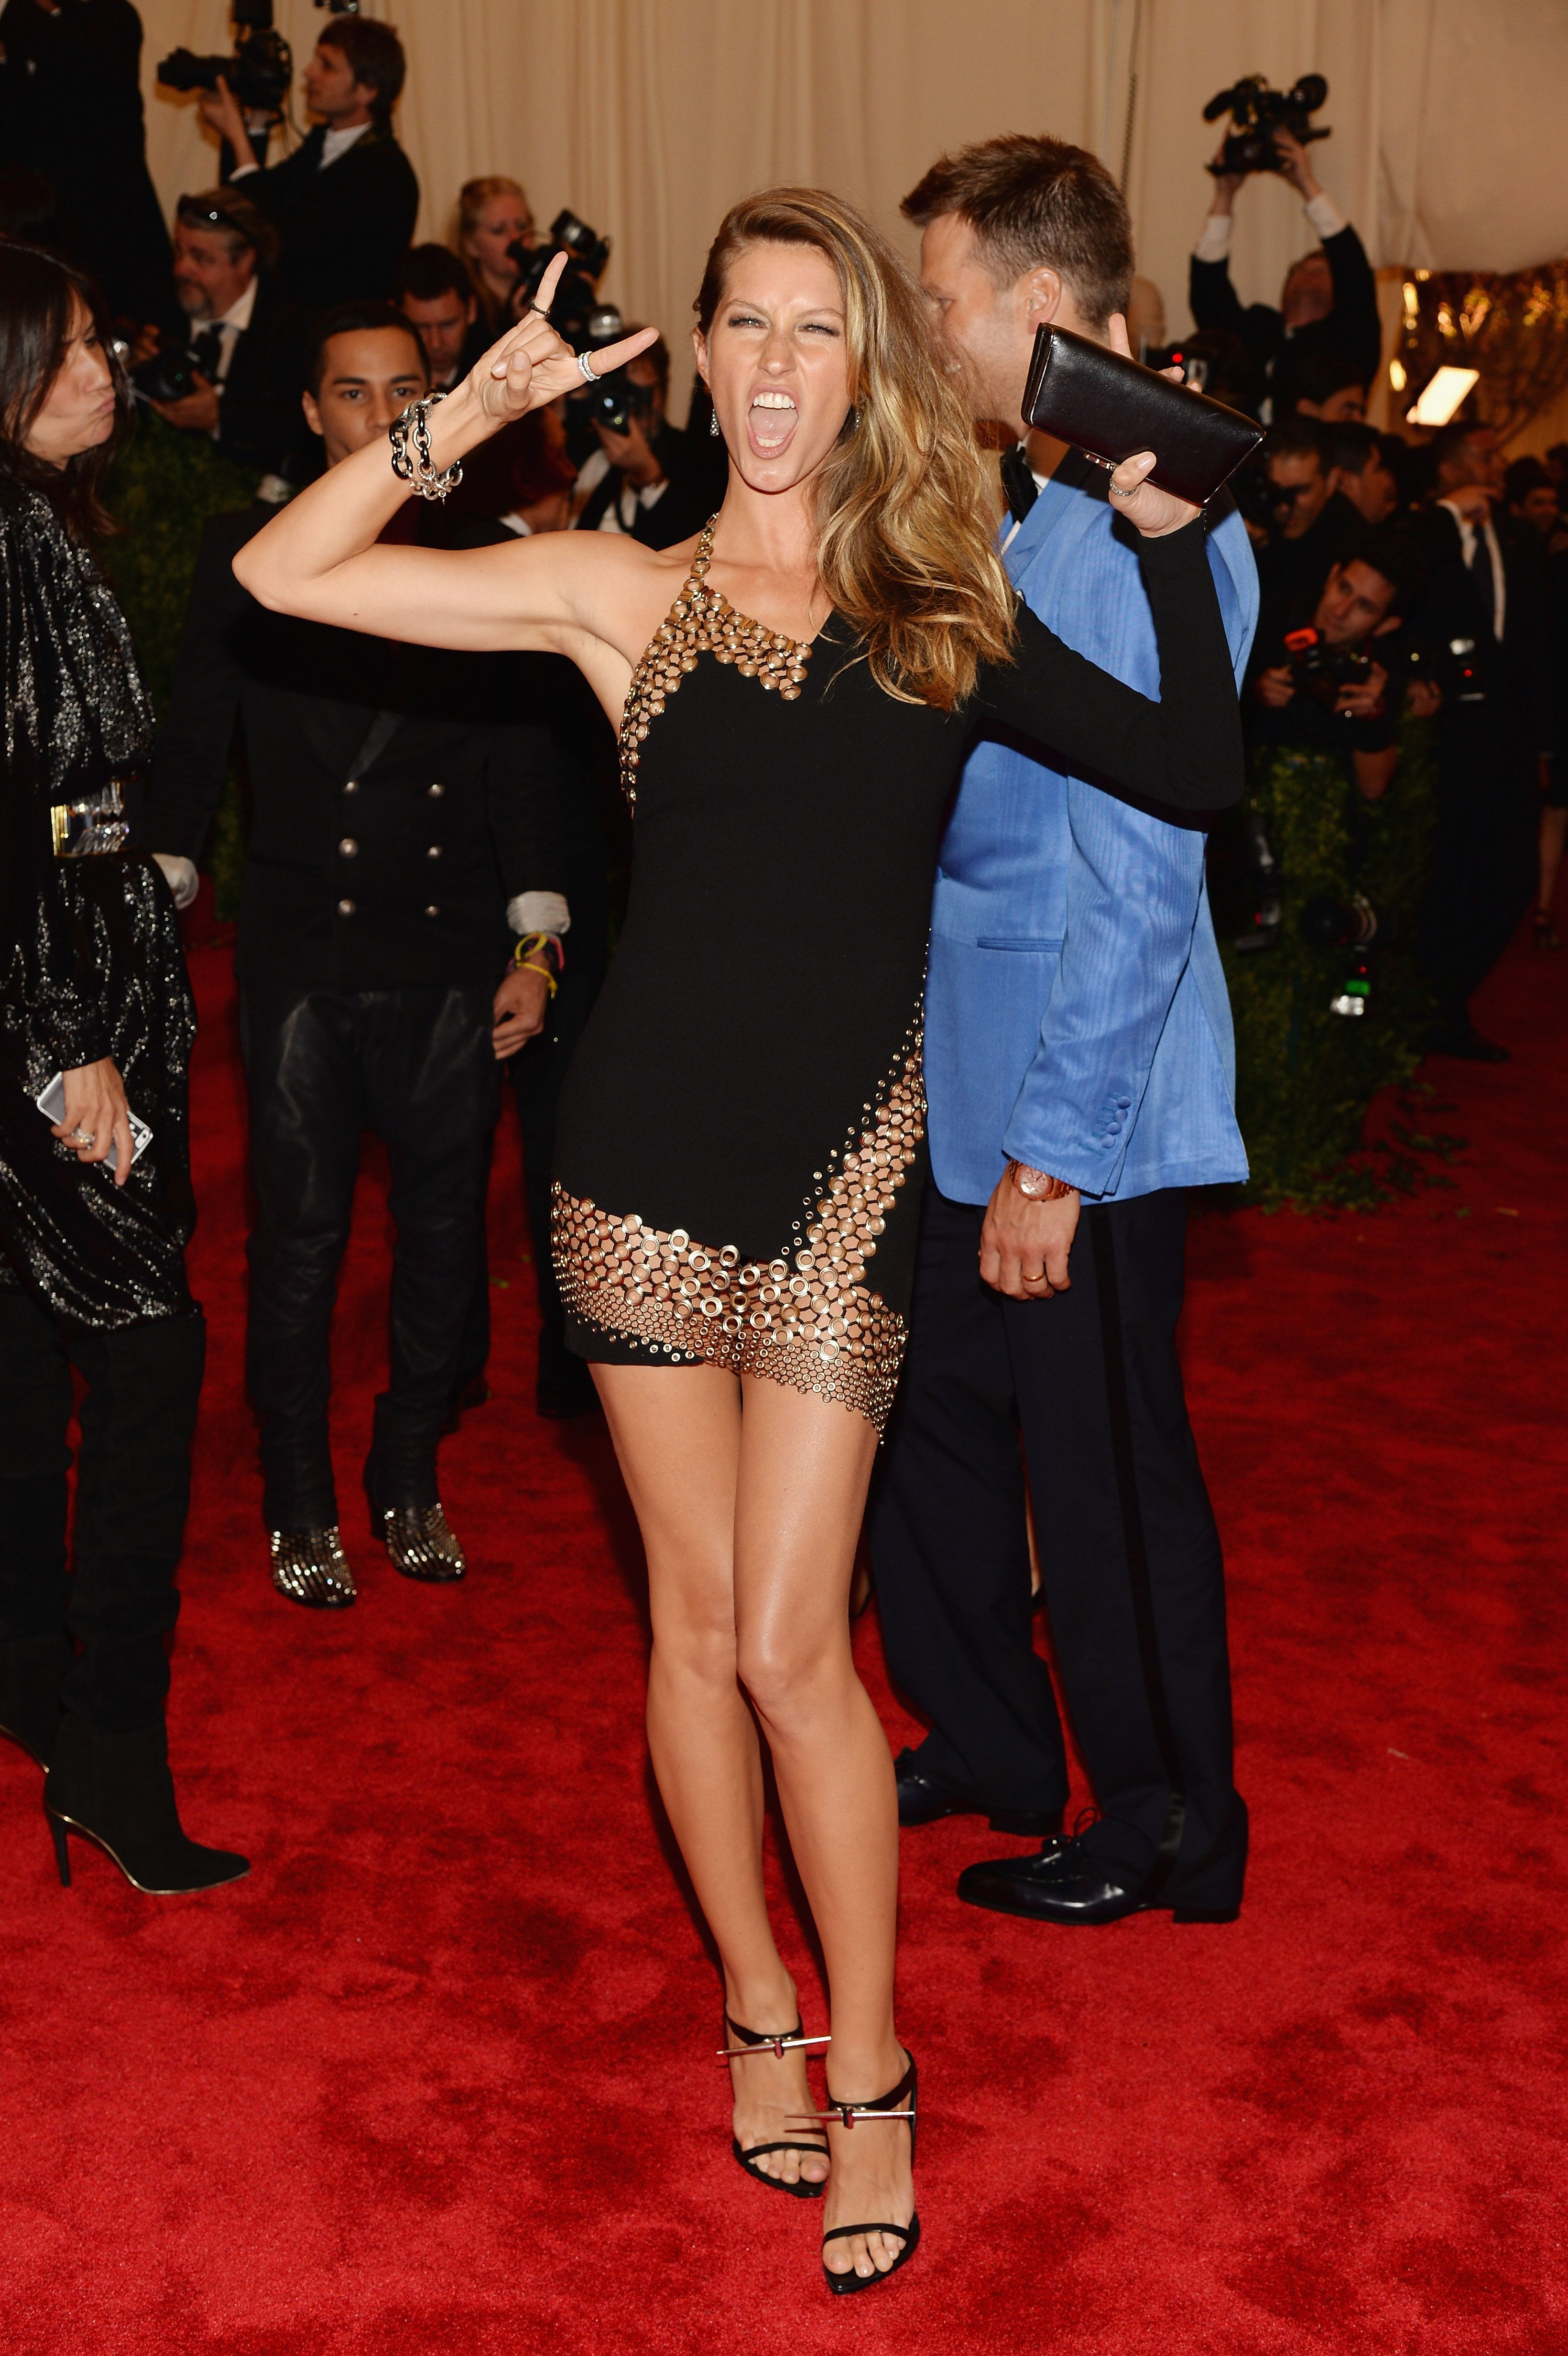 Flache Schuhe Roter Teppich Gisele Bundchen In Anthony Vaccarello At 2013 Met Gala In Nyc